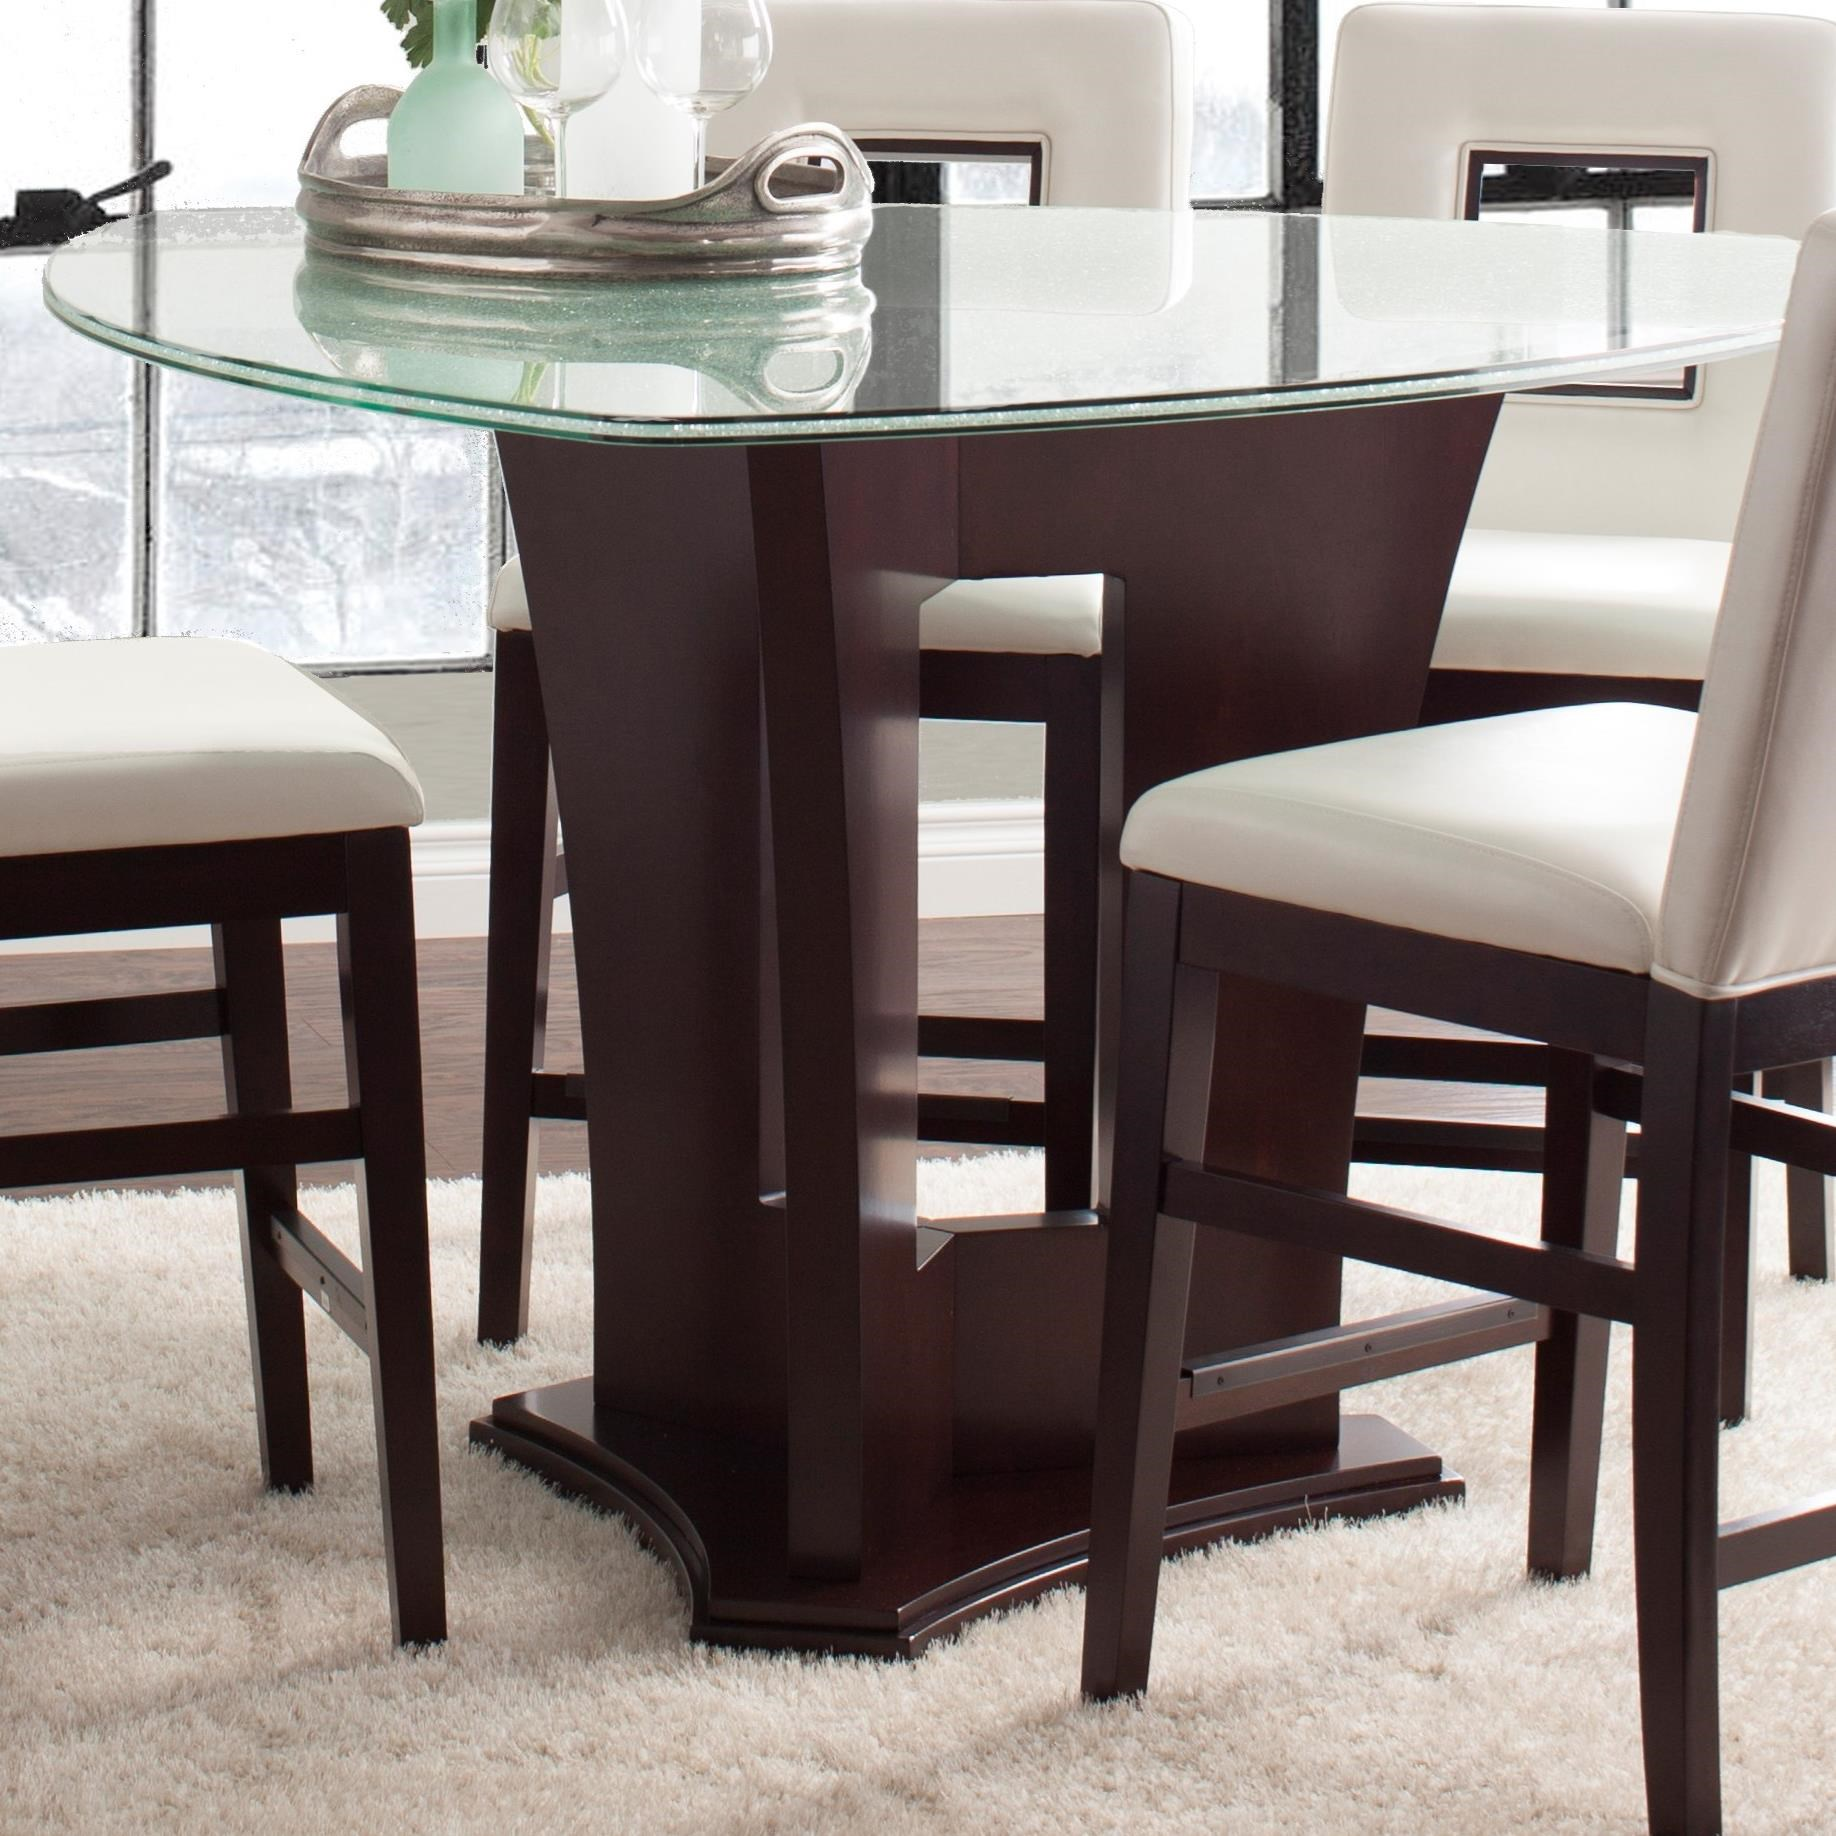 Glass Dining Table And Chairs Soho Counter Height Dining Table With Crackled Glass Top By Najarian At Del Sol Furniture